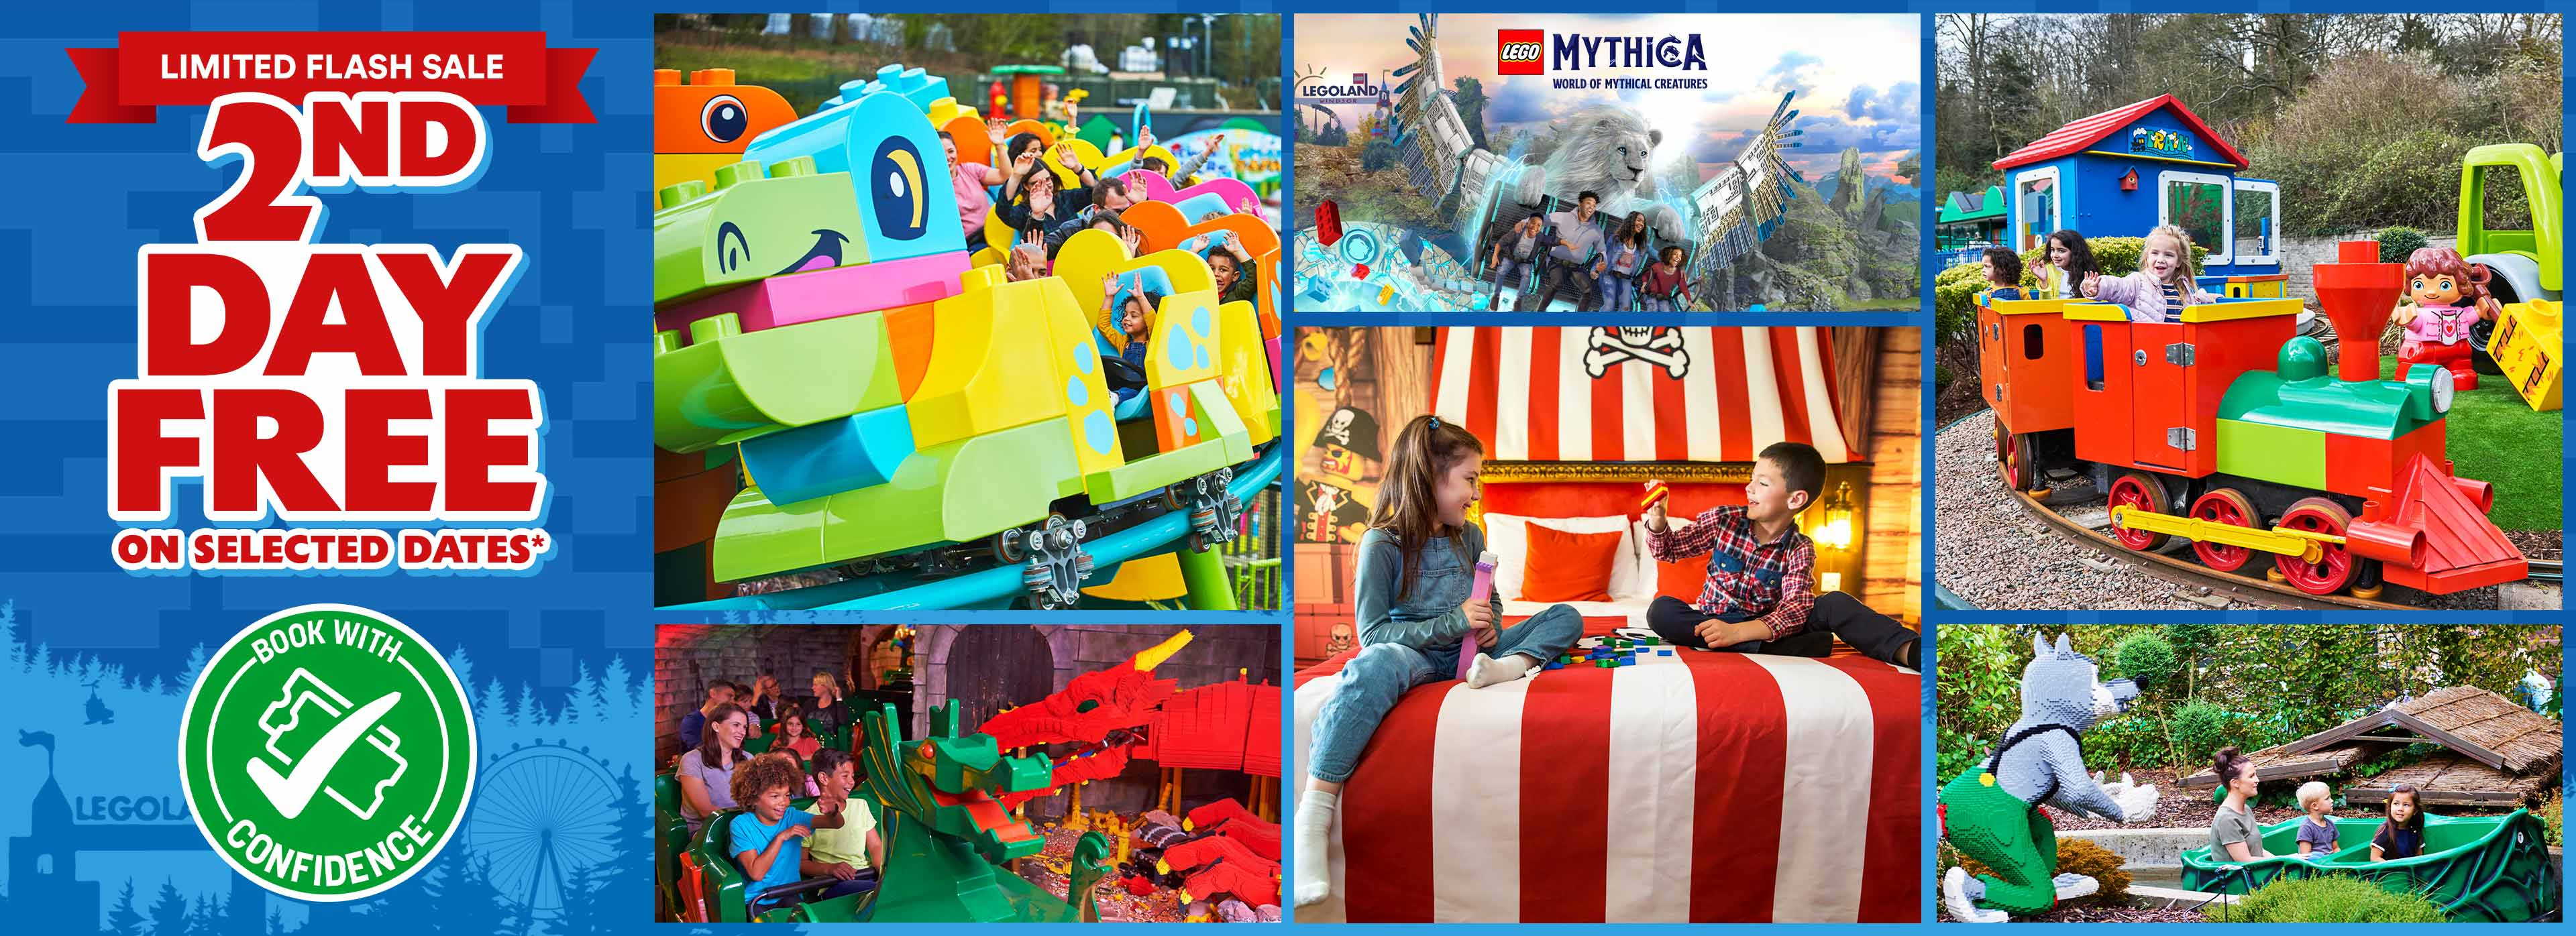 2nd Day FREE offer with LEGOLAND Holidays